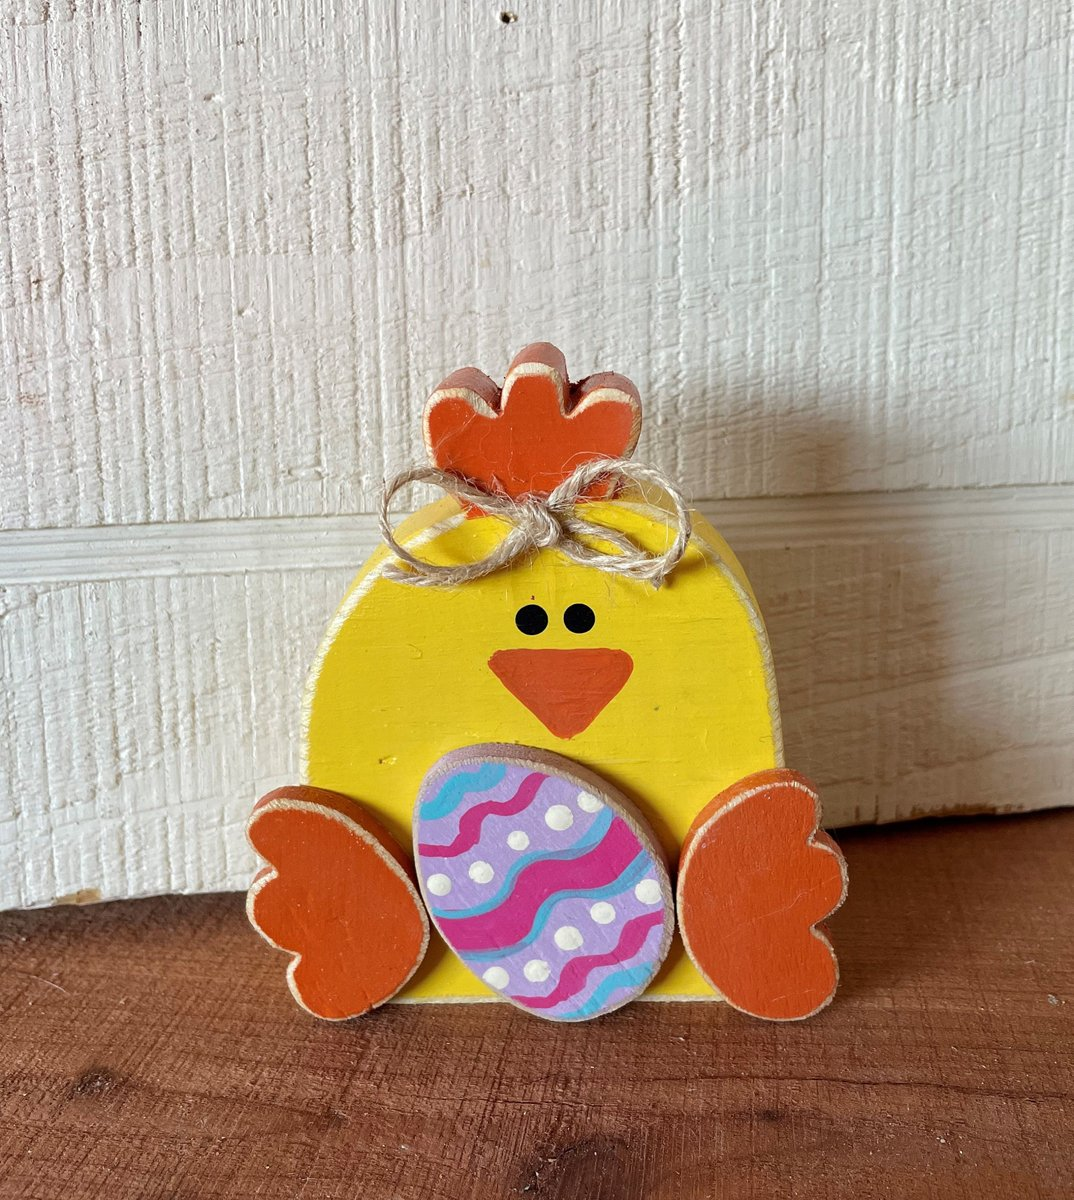 Excited to share the latest addition to my #etsy shop: Wood Easter Chick, Wooden Chicken, Wood Easter Decor, Easter Tiered Tray Decor, Easter Wood Decor, Spring Wood Decor, Spring Chick  #yellow #easter #orange #tieredtraydecor #wooddecorations #